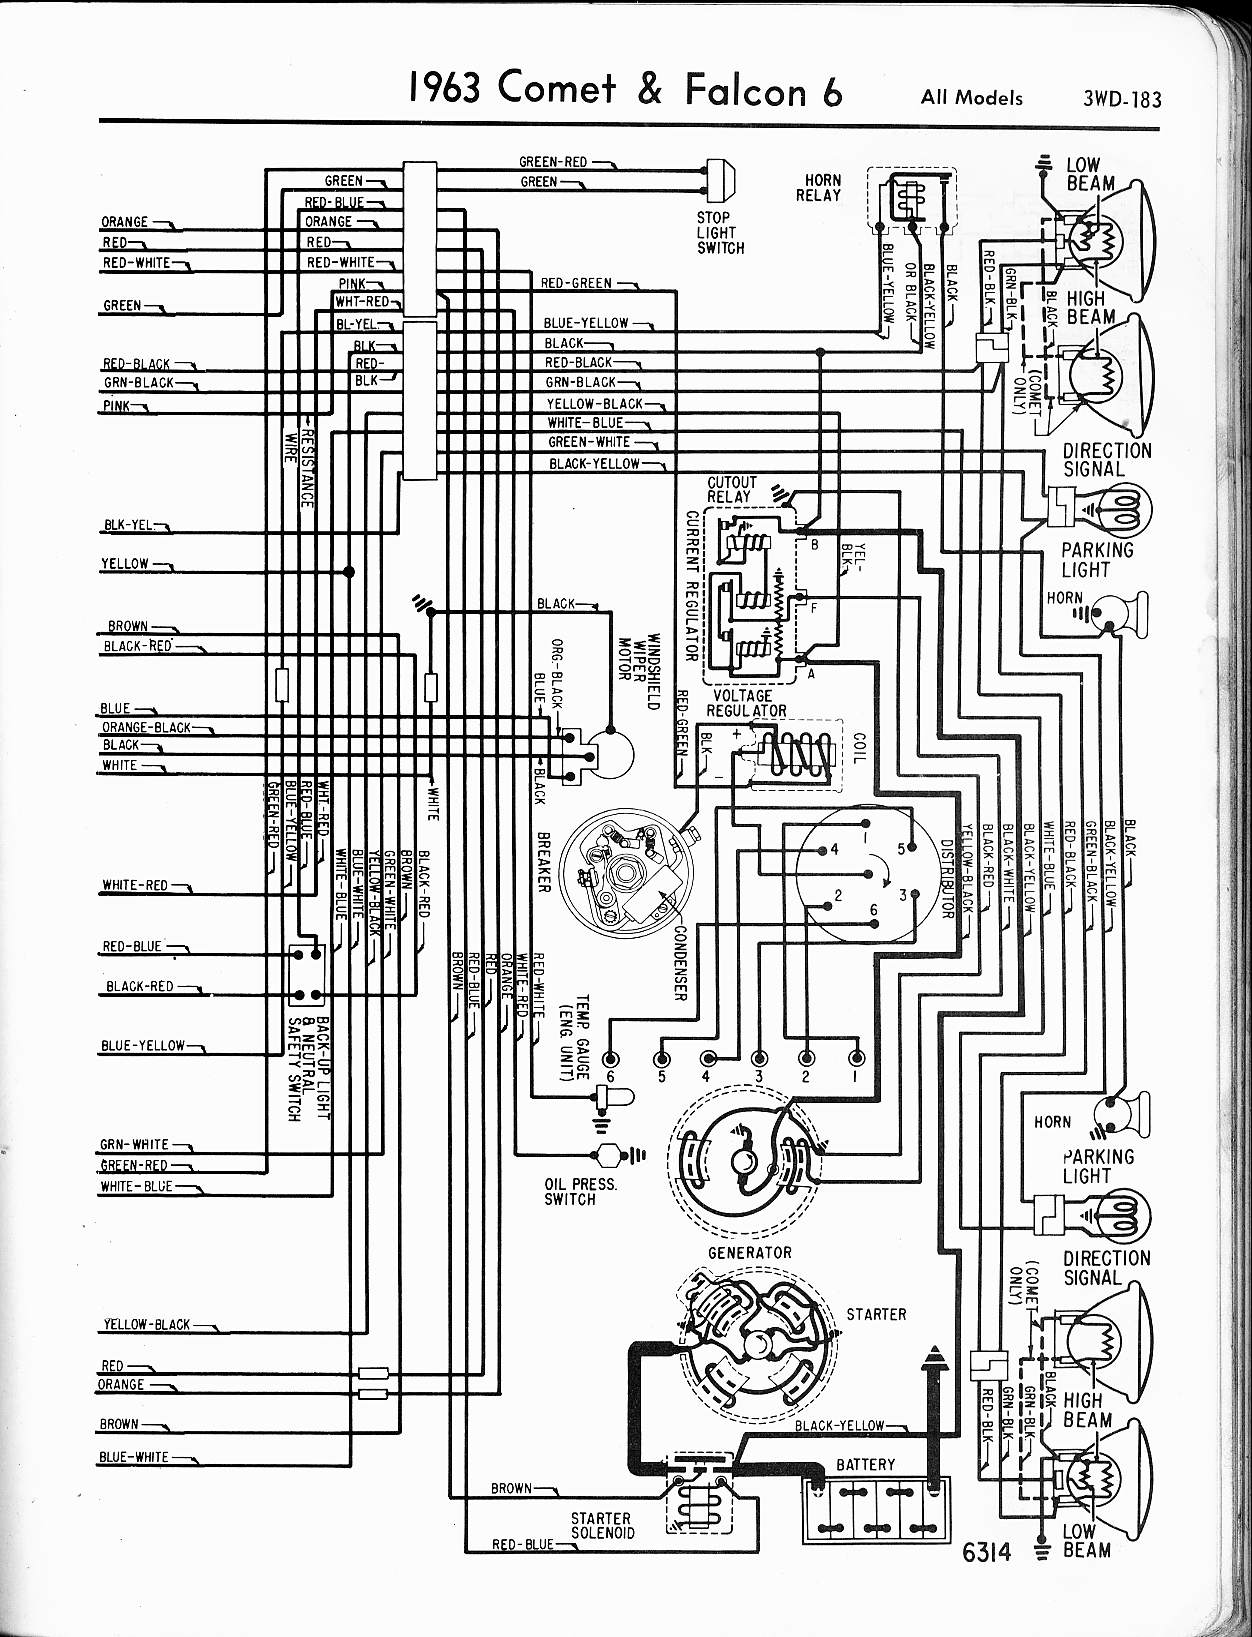 63 falcon wiring diagram fordforumsonline com ford falcon wiring diagram at fashall.co